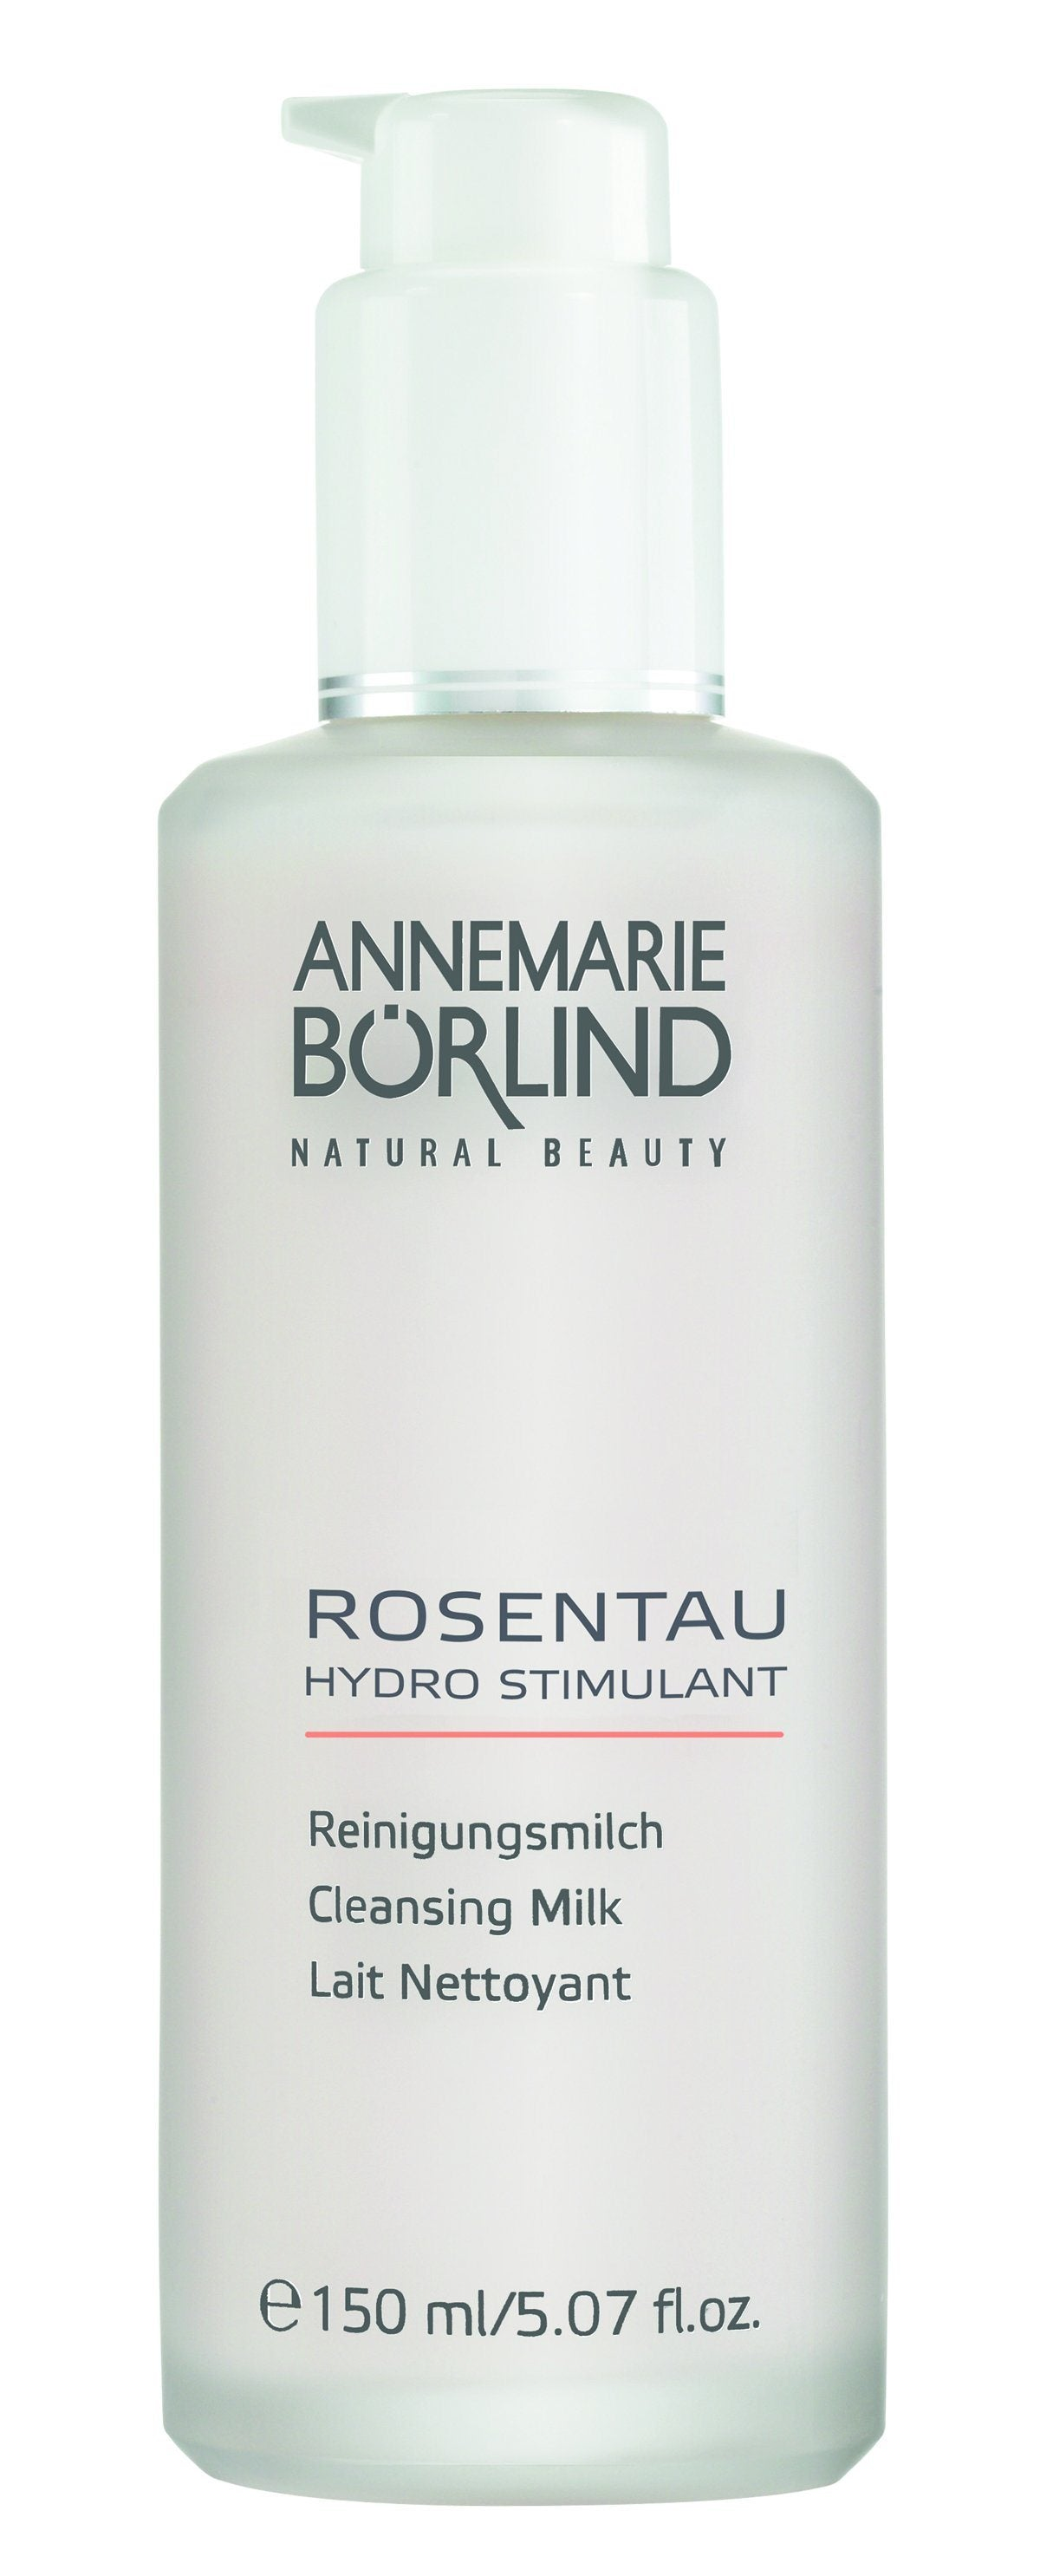 Personal Care - Annemarie Borlind Rose Dew Cleansing Milk, 150mL